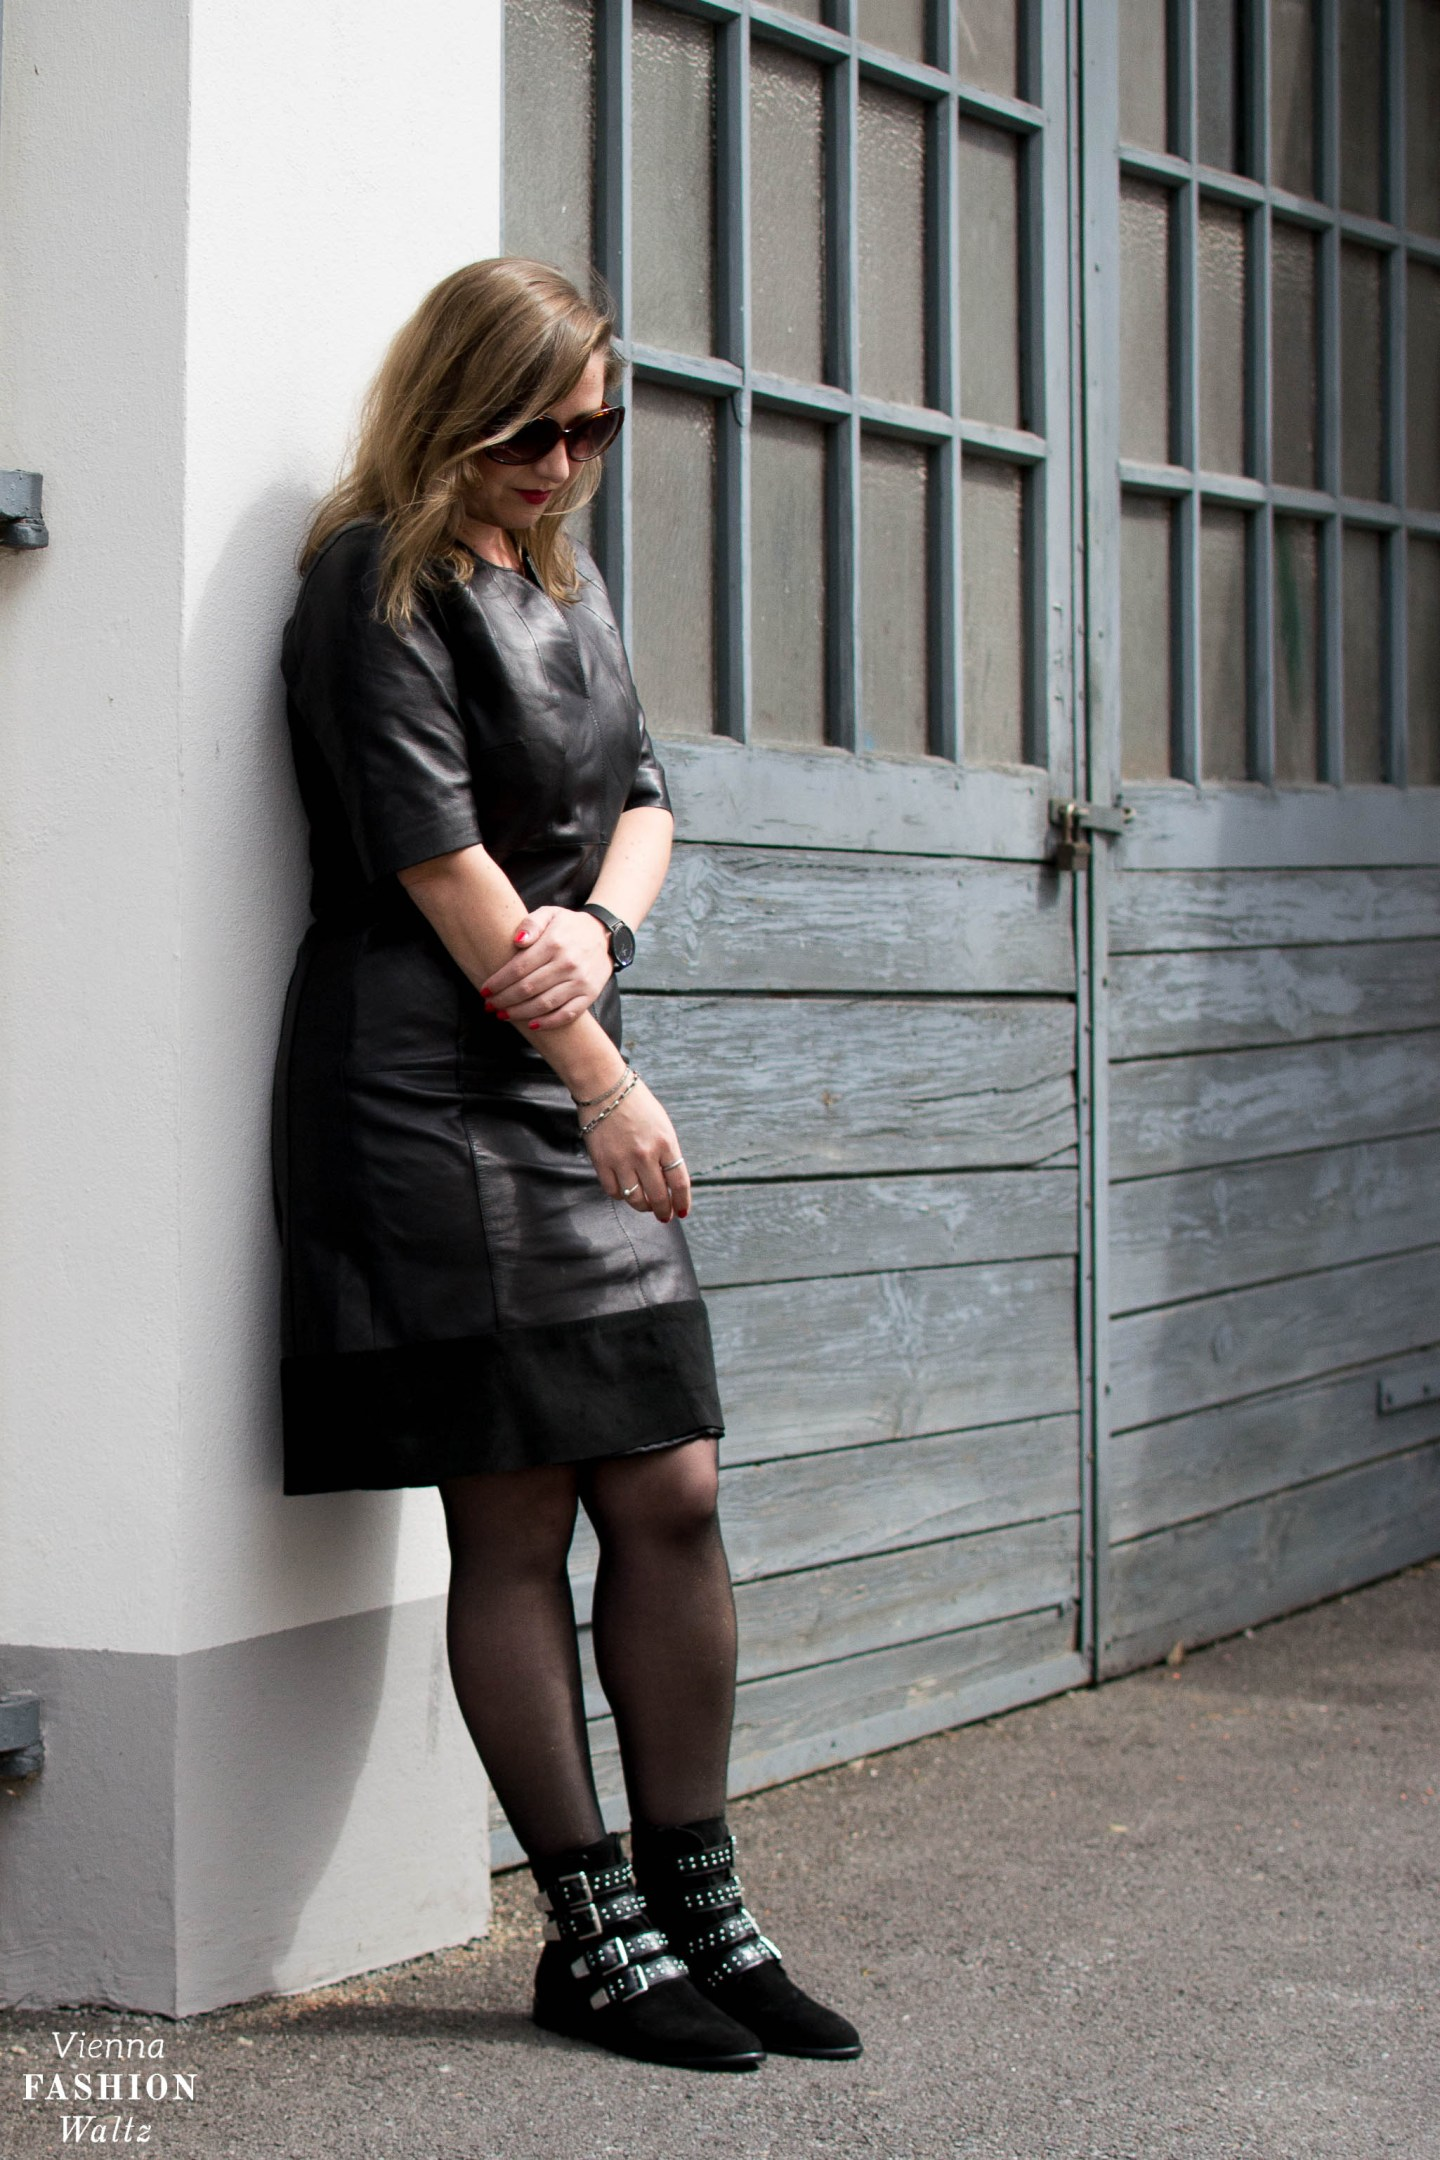 Elegant Elegant Rock Style with Biker Boots, Rock chic Leatherdress Outfit